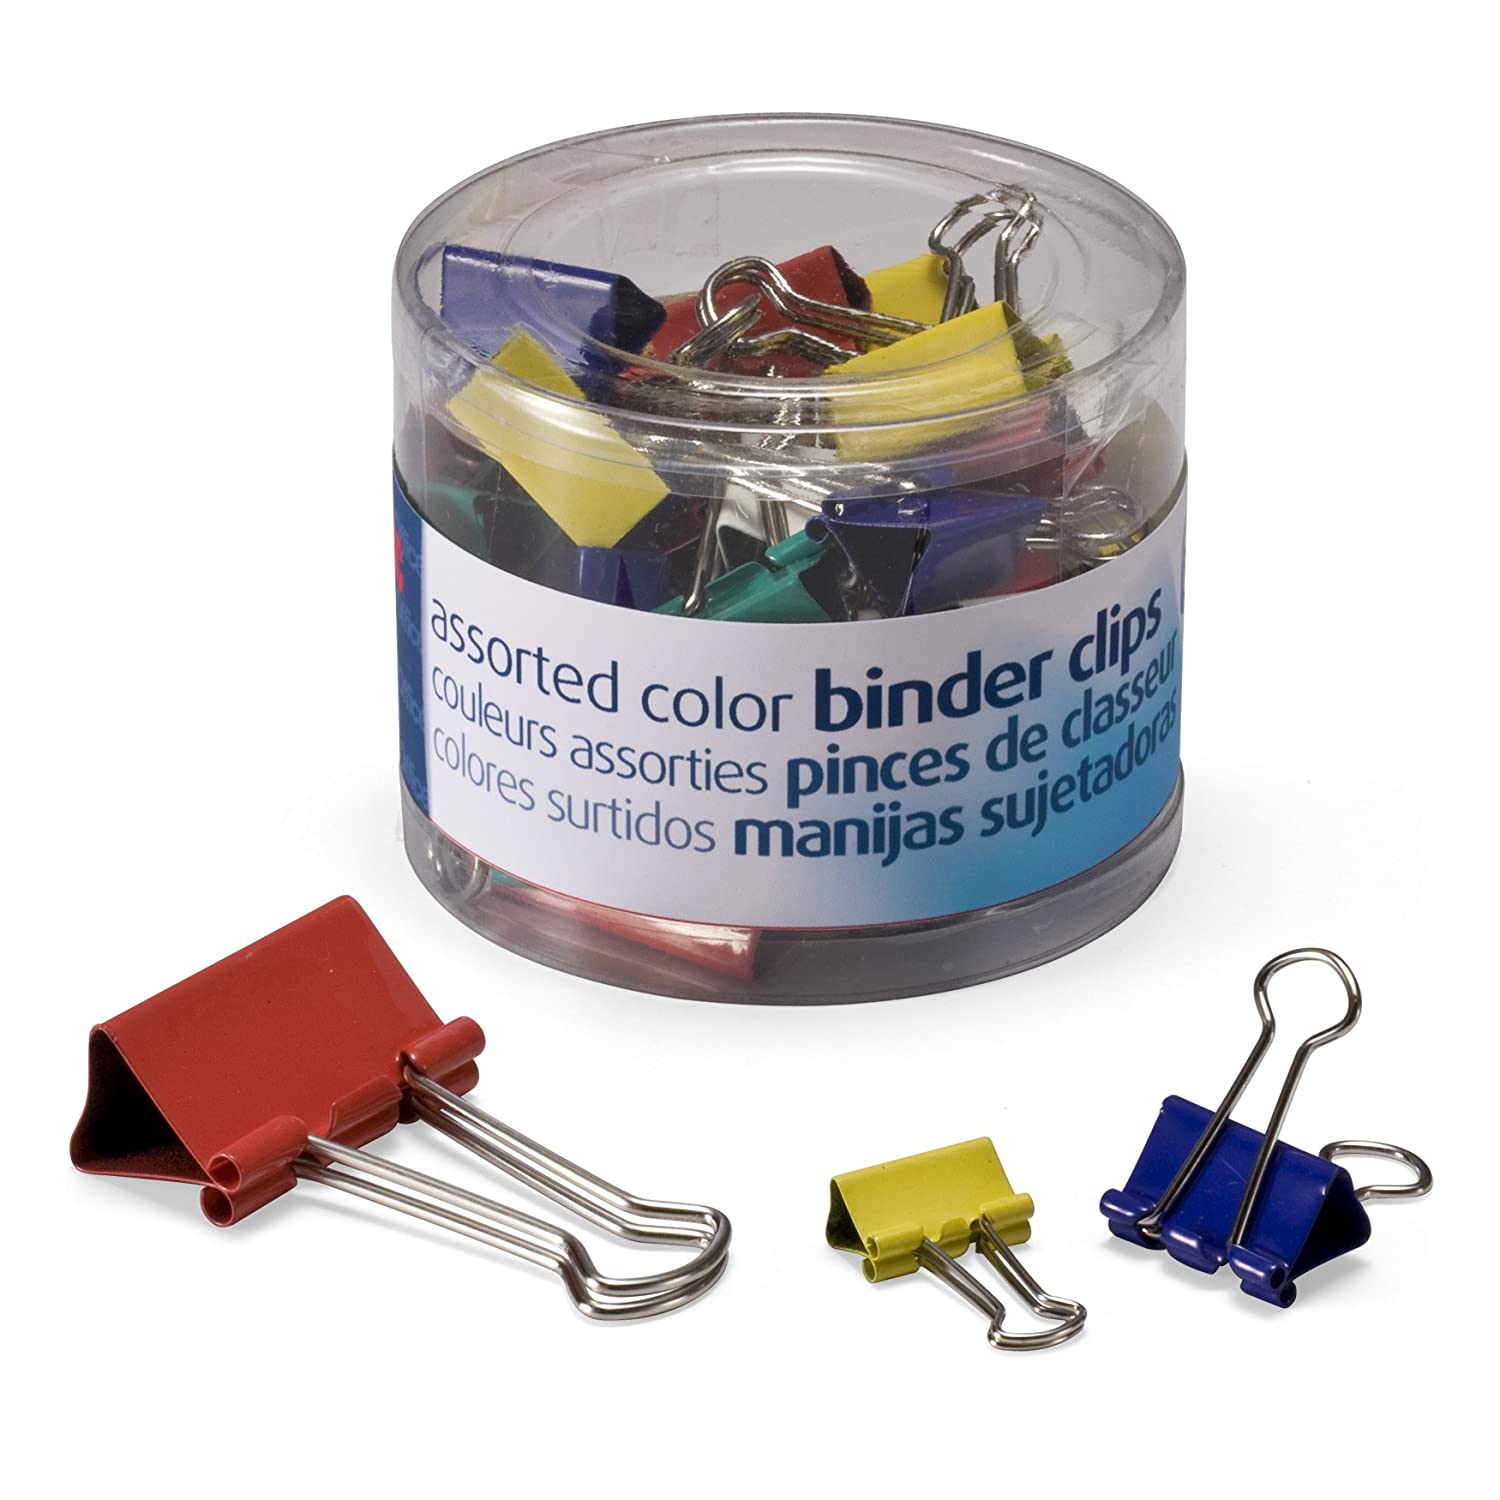 Amazon.com : OfficemateOIC Micro Binder Clips, Assorted Colors, 100 Clips per Tub (31023) : Mini Binder Clips : Office Products